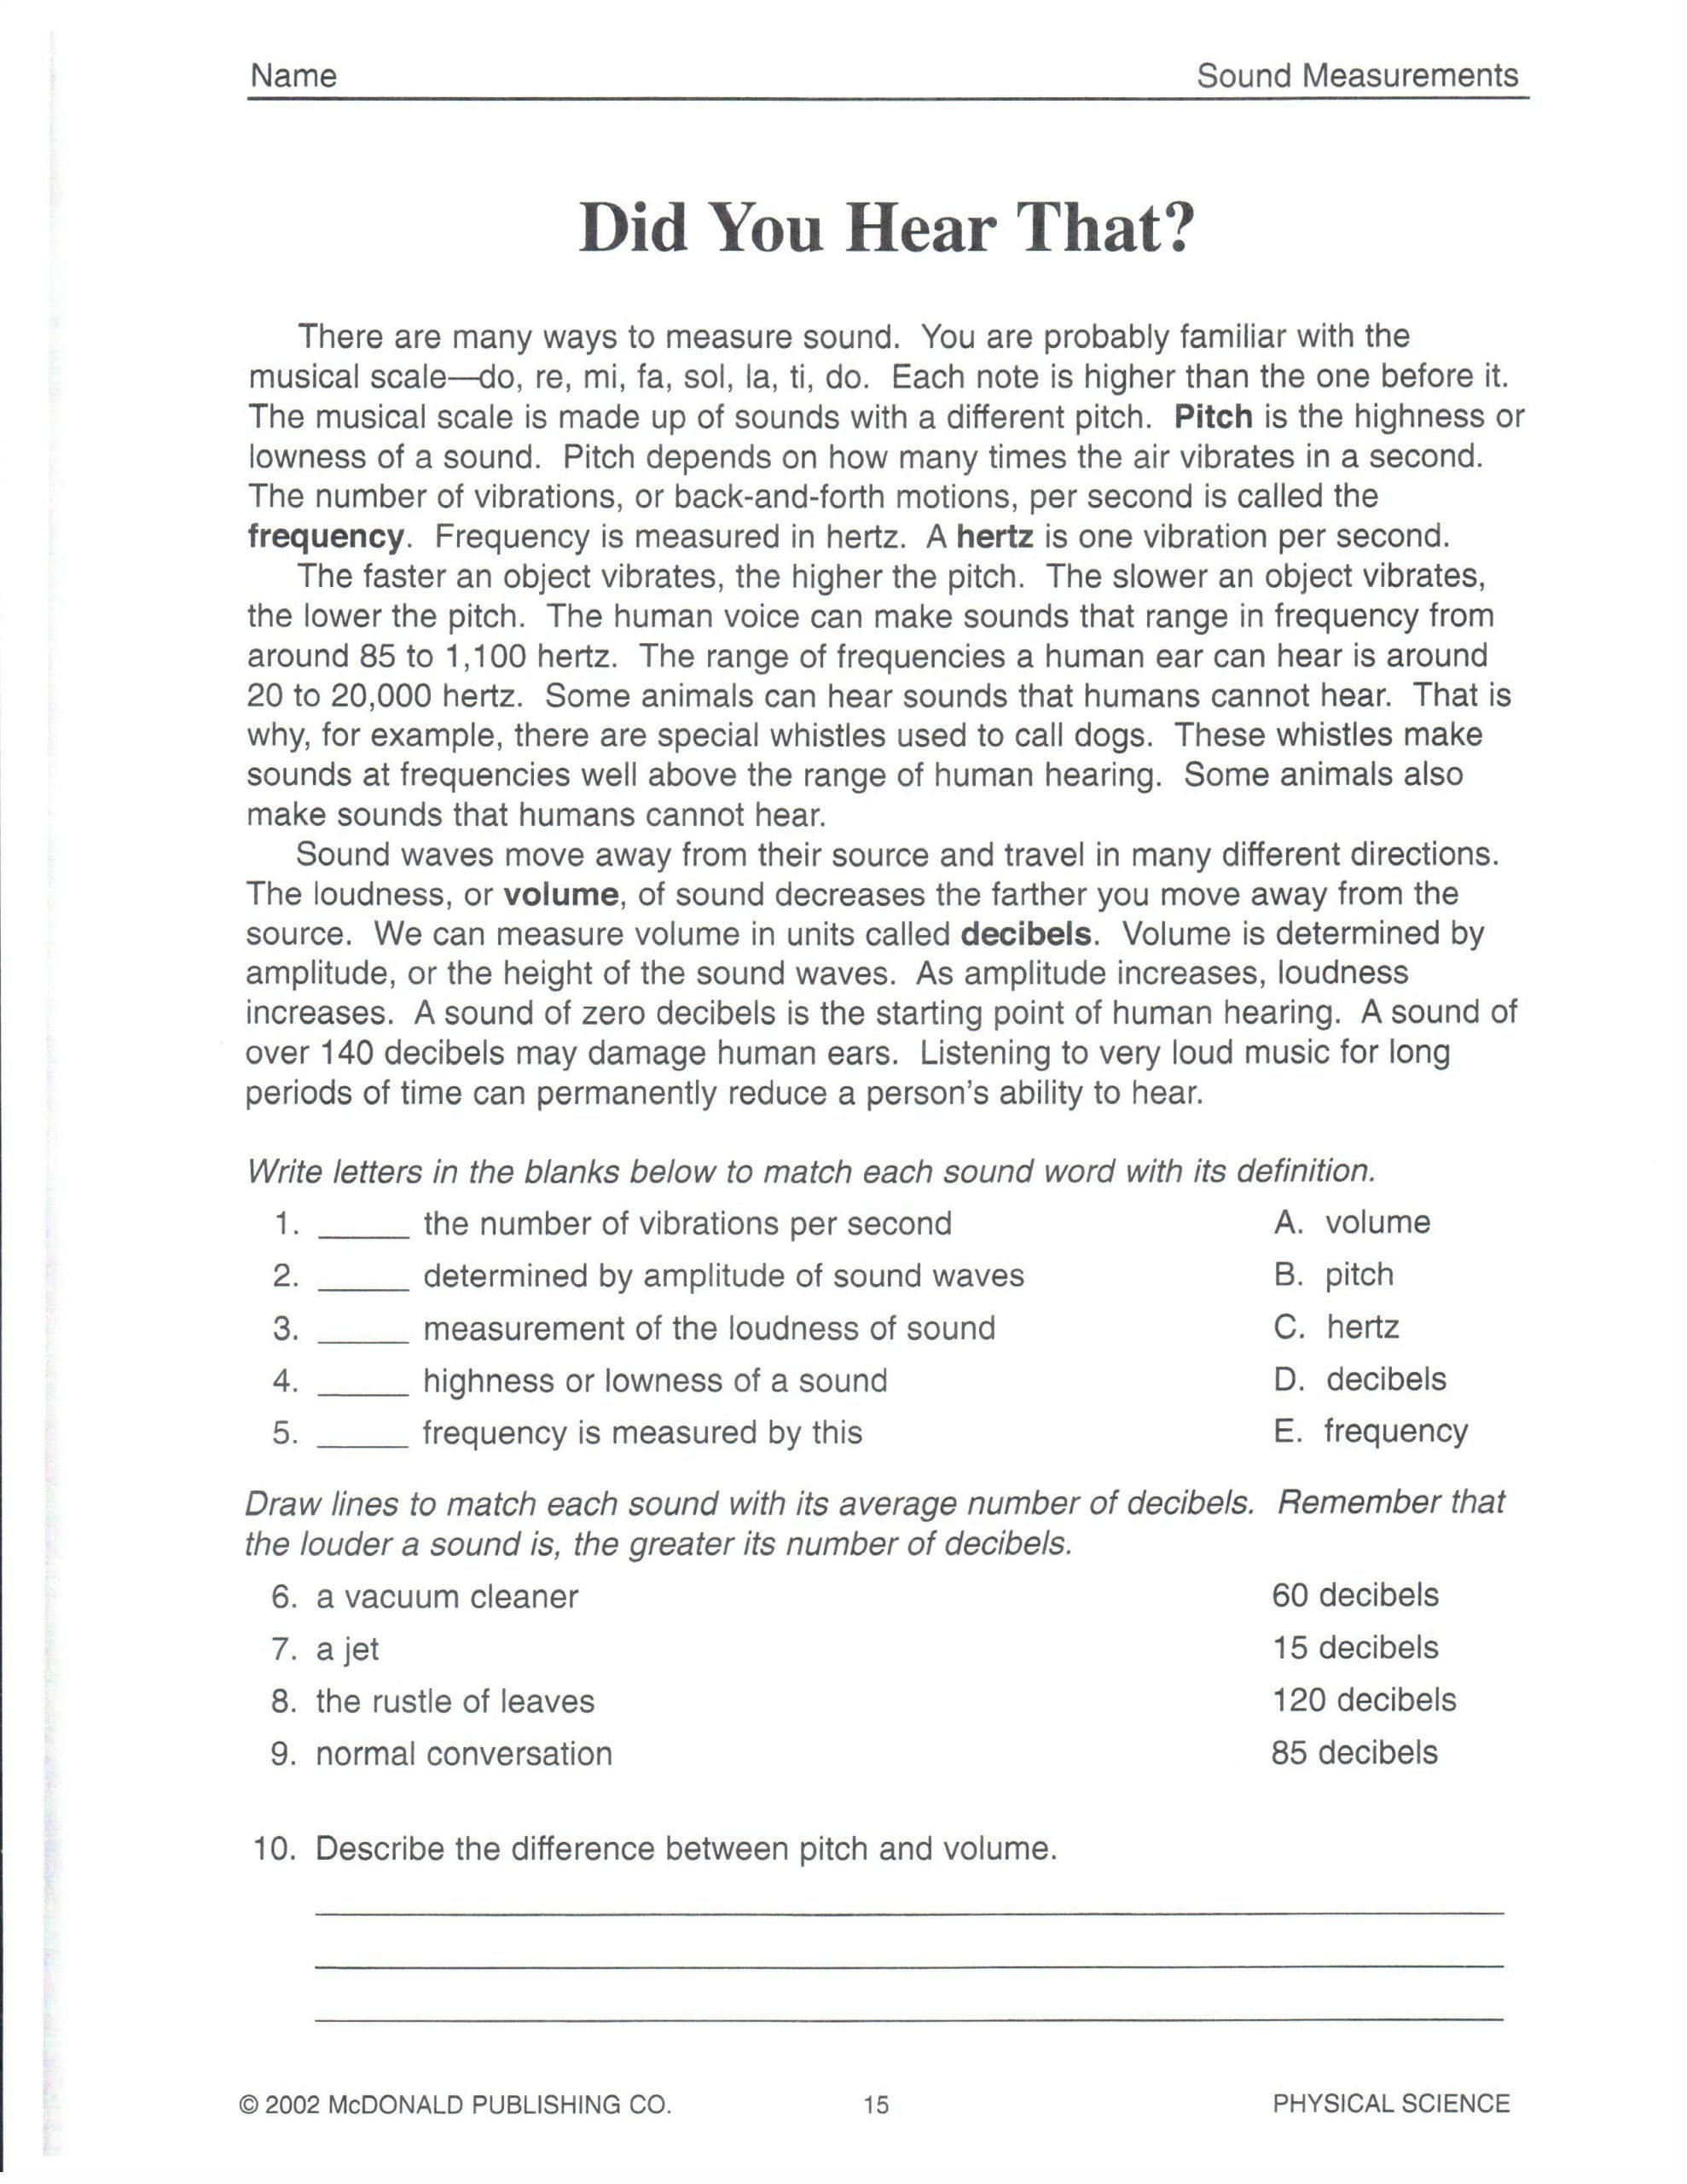 7th Grade Science Worksheets Printable Physical Science Did You Hear that 101roxm 2 550—3 300